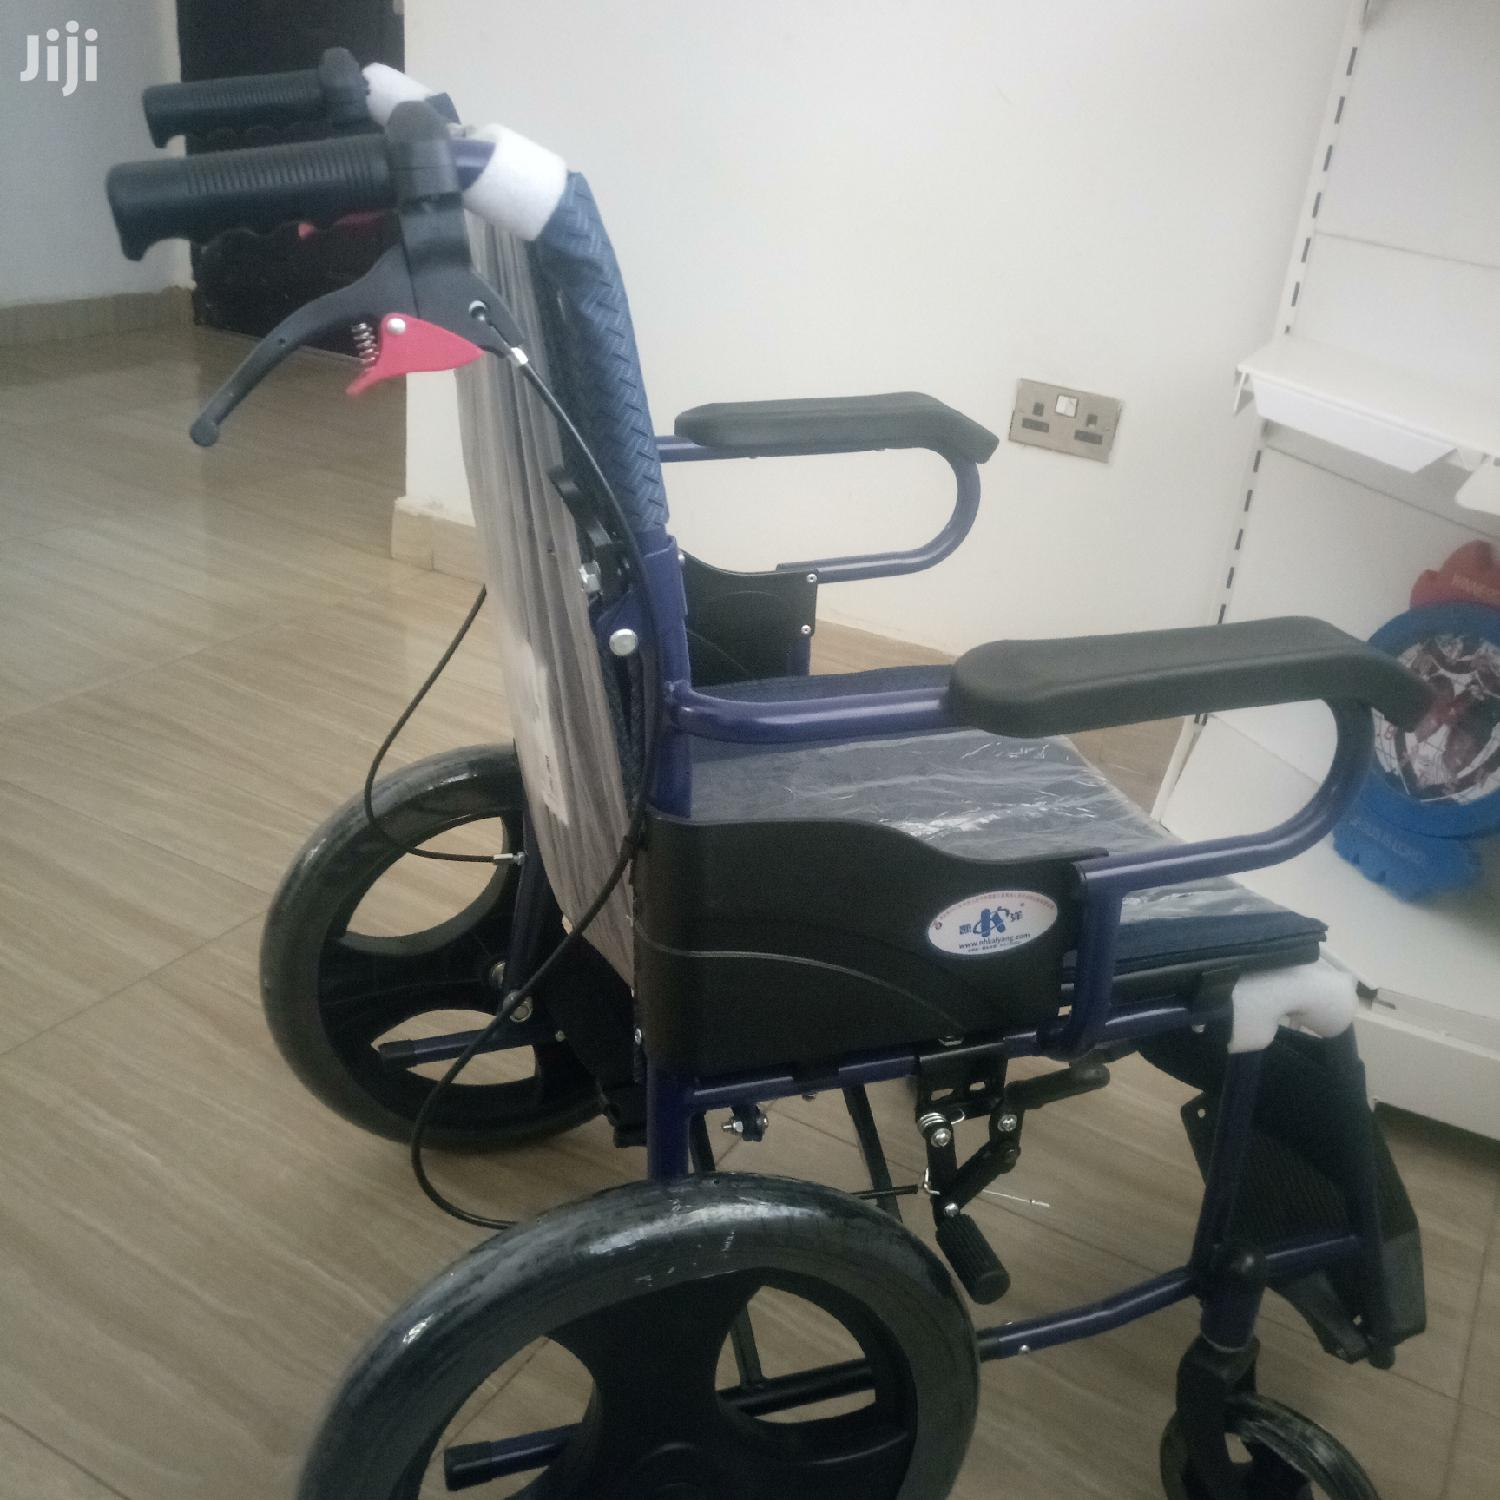 Normal Wheelchair | Tools & Accessories for sale in Dansoman, Greater Accra, Ghana